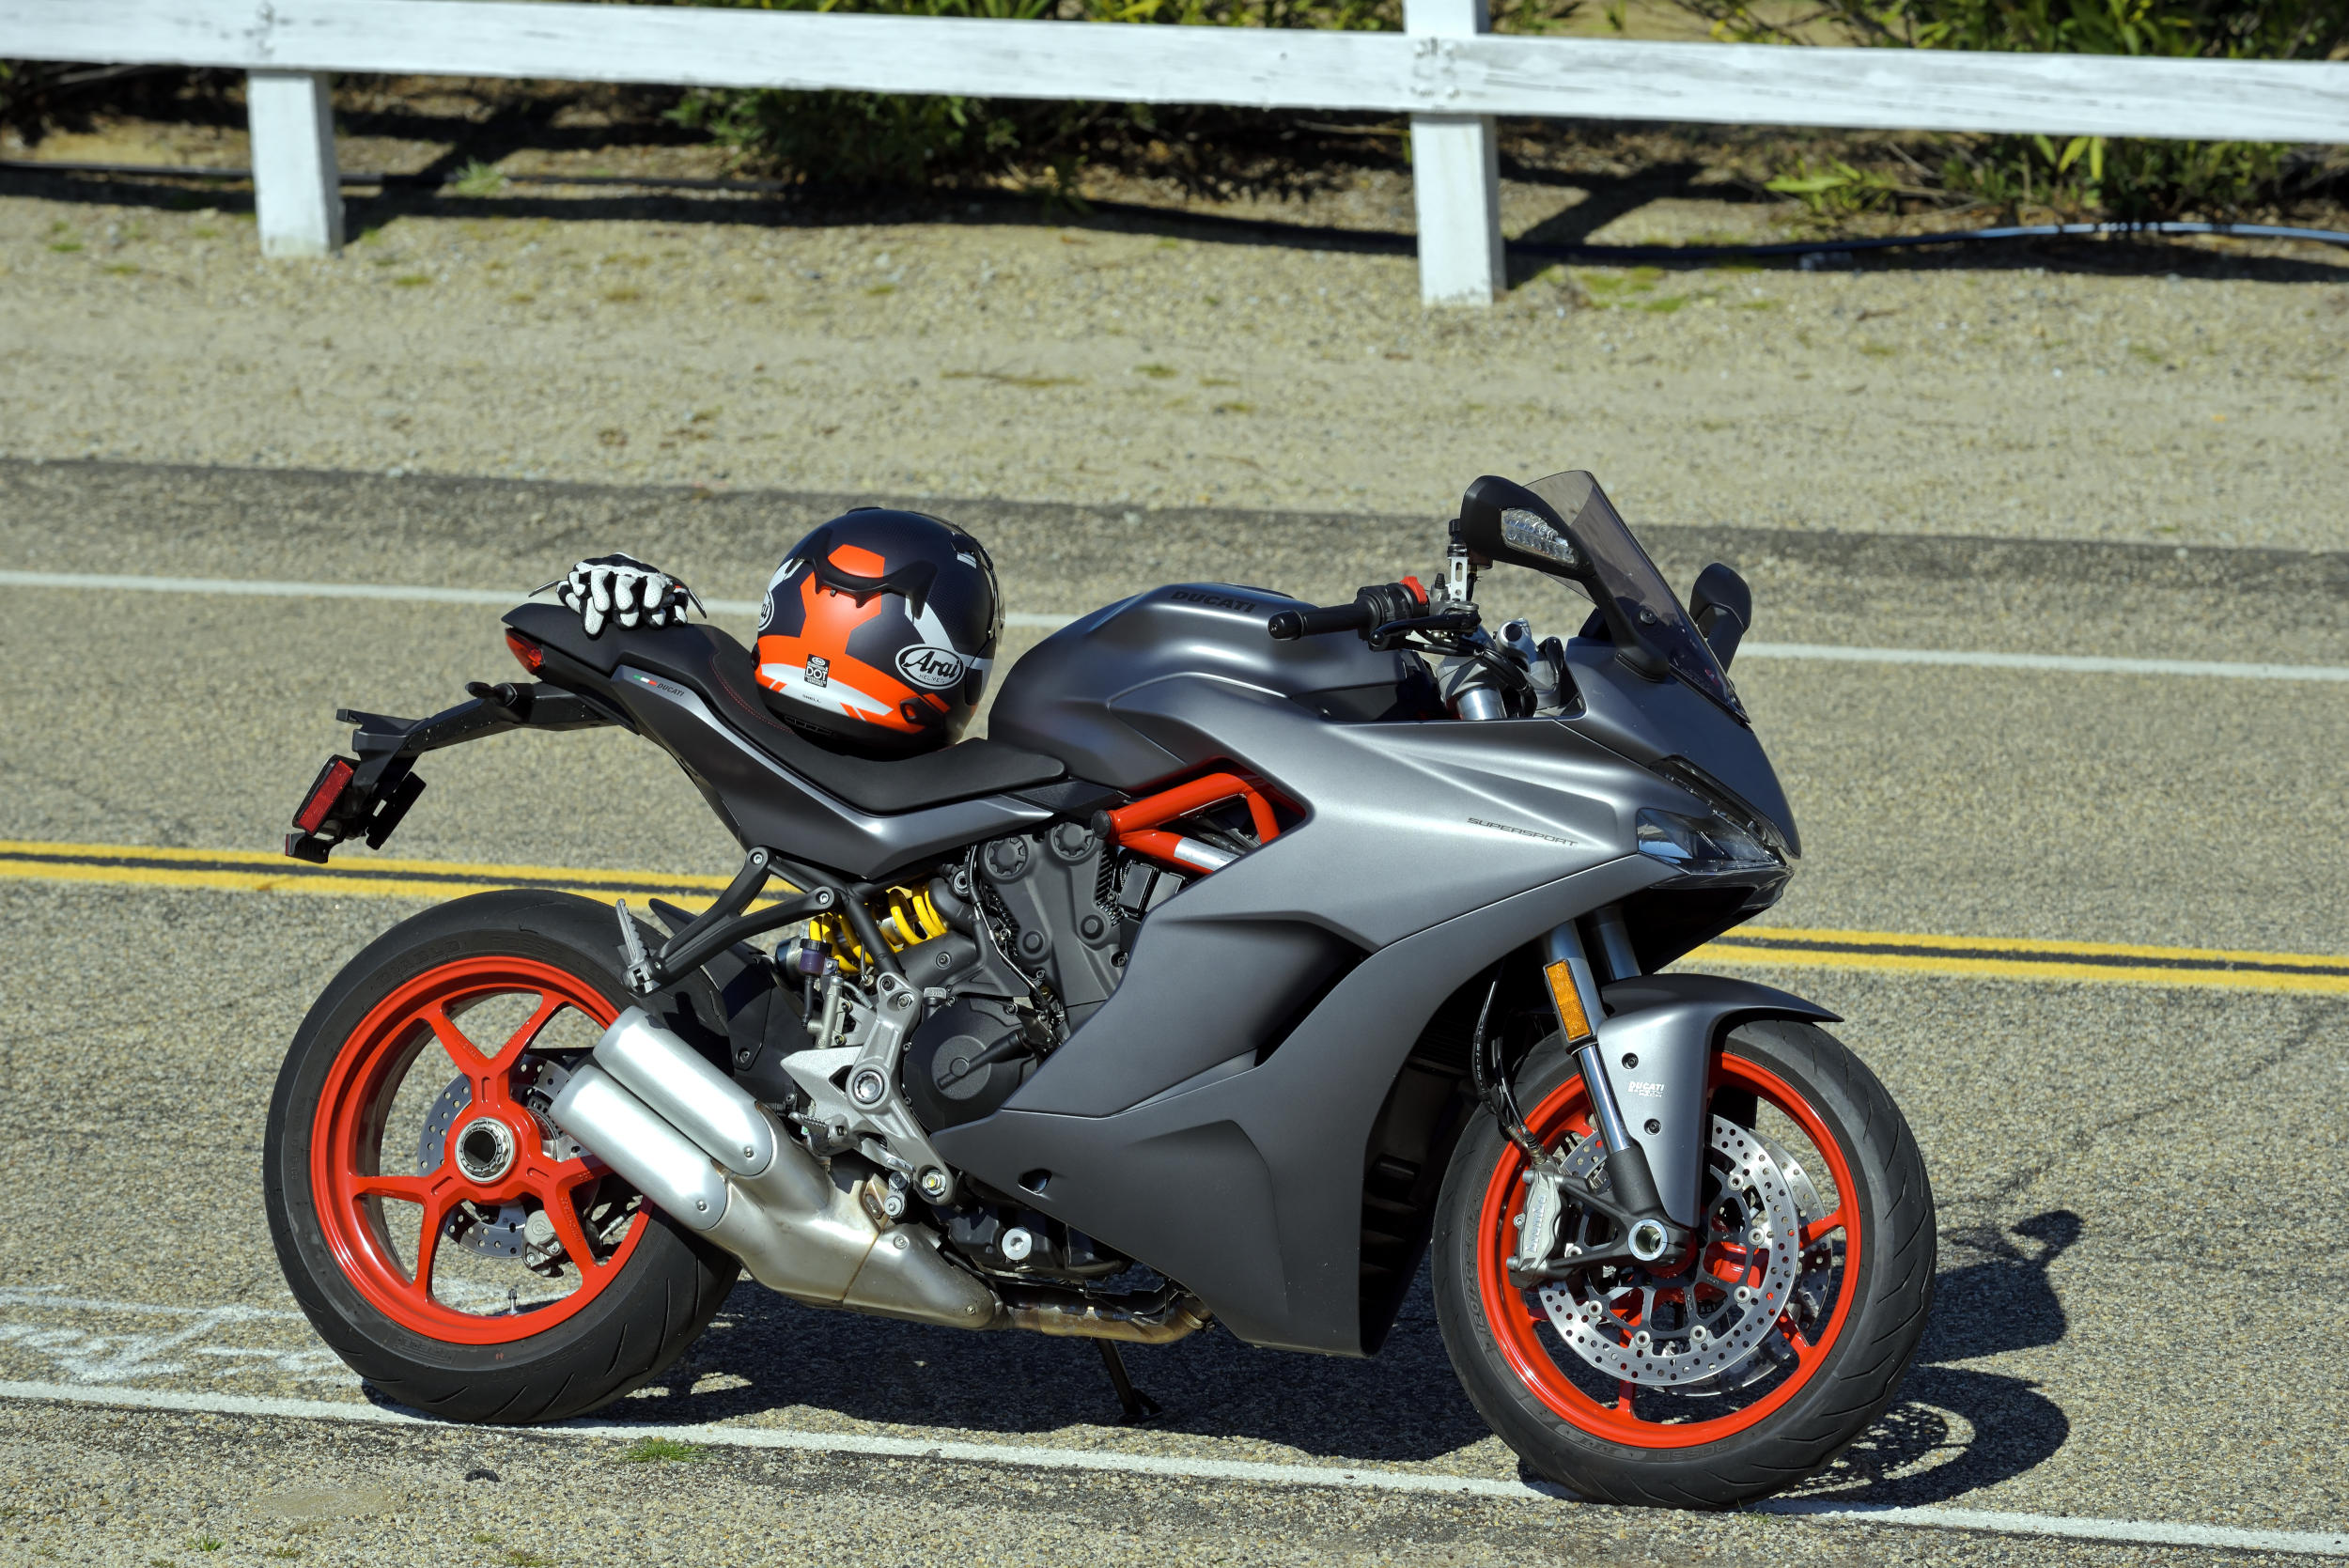 2019 Ducati SuperSport: MD Long-Term Review, Part 2